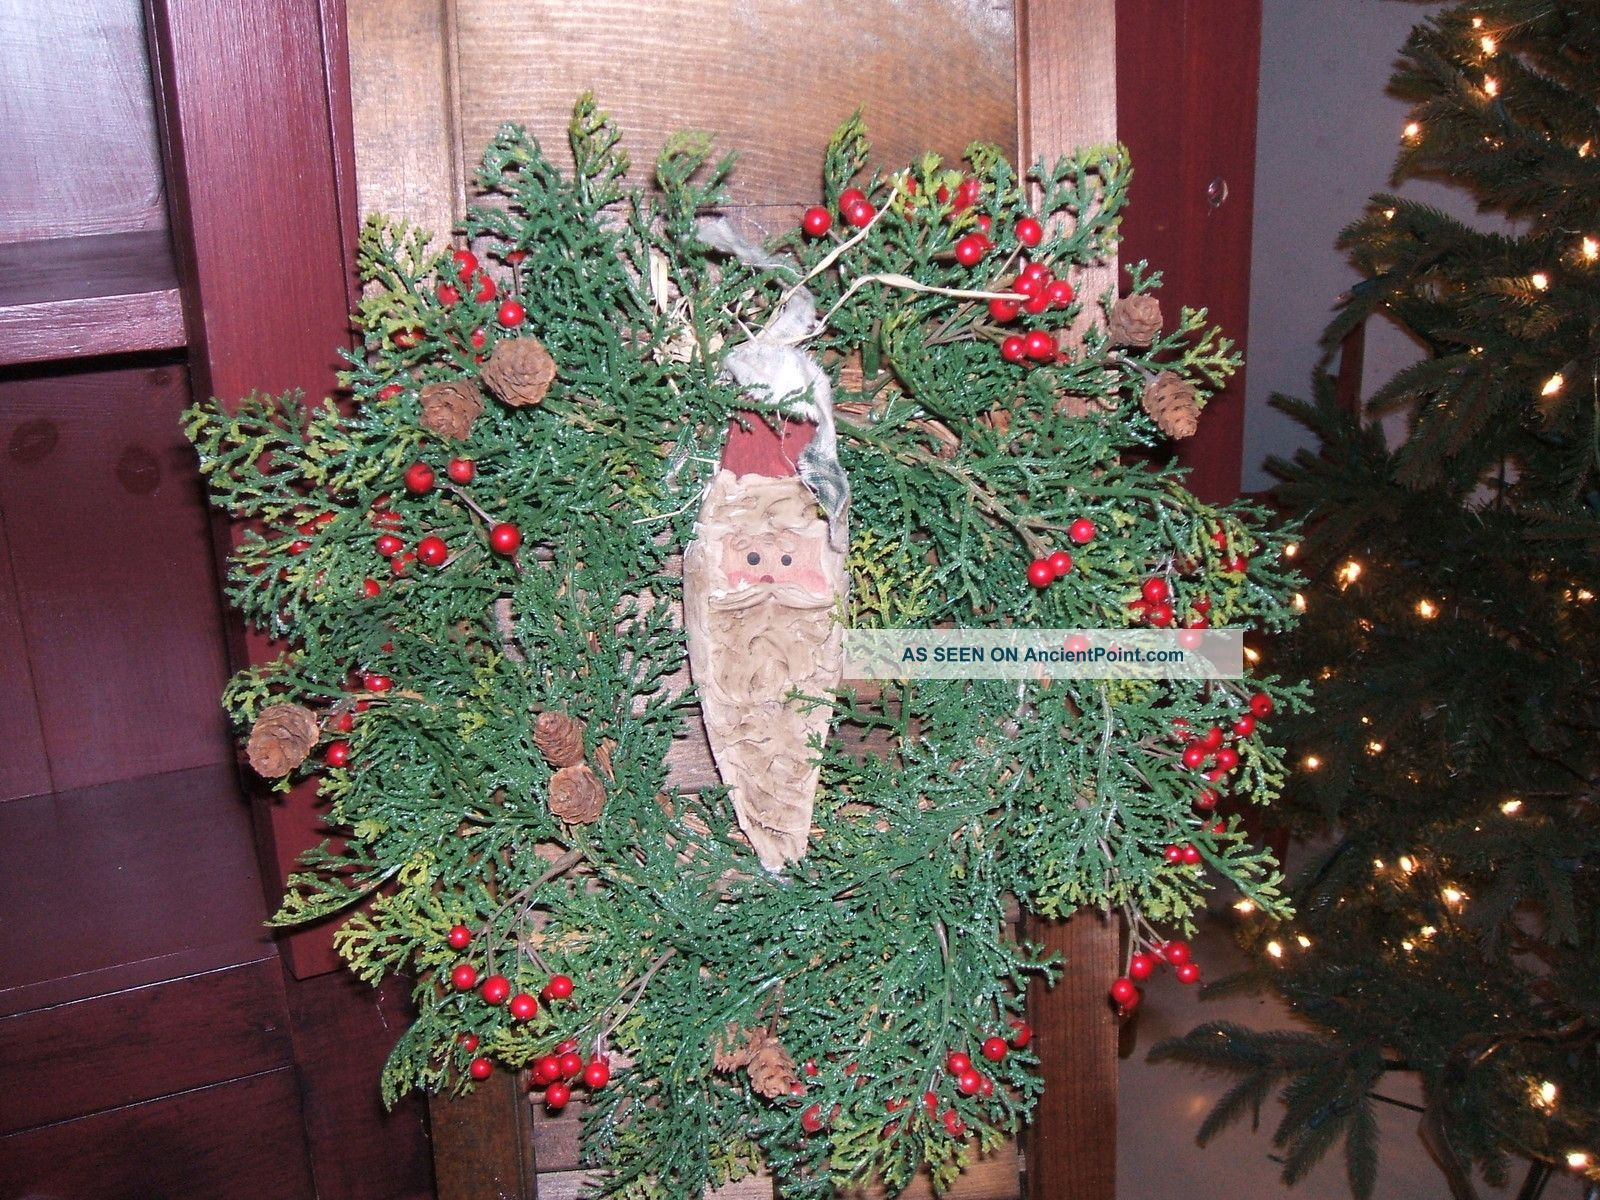 Primitive Country Christmas Decor Wooden Shutter Wreath Santa Winter